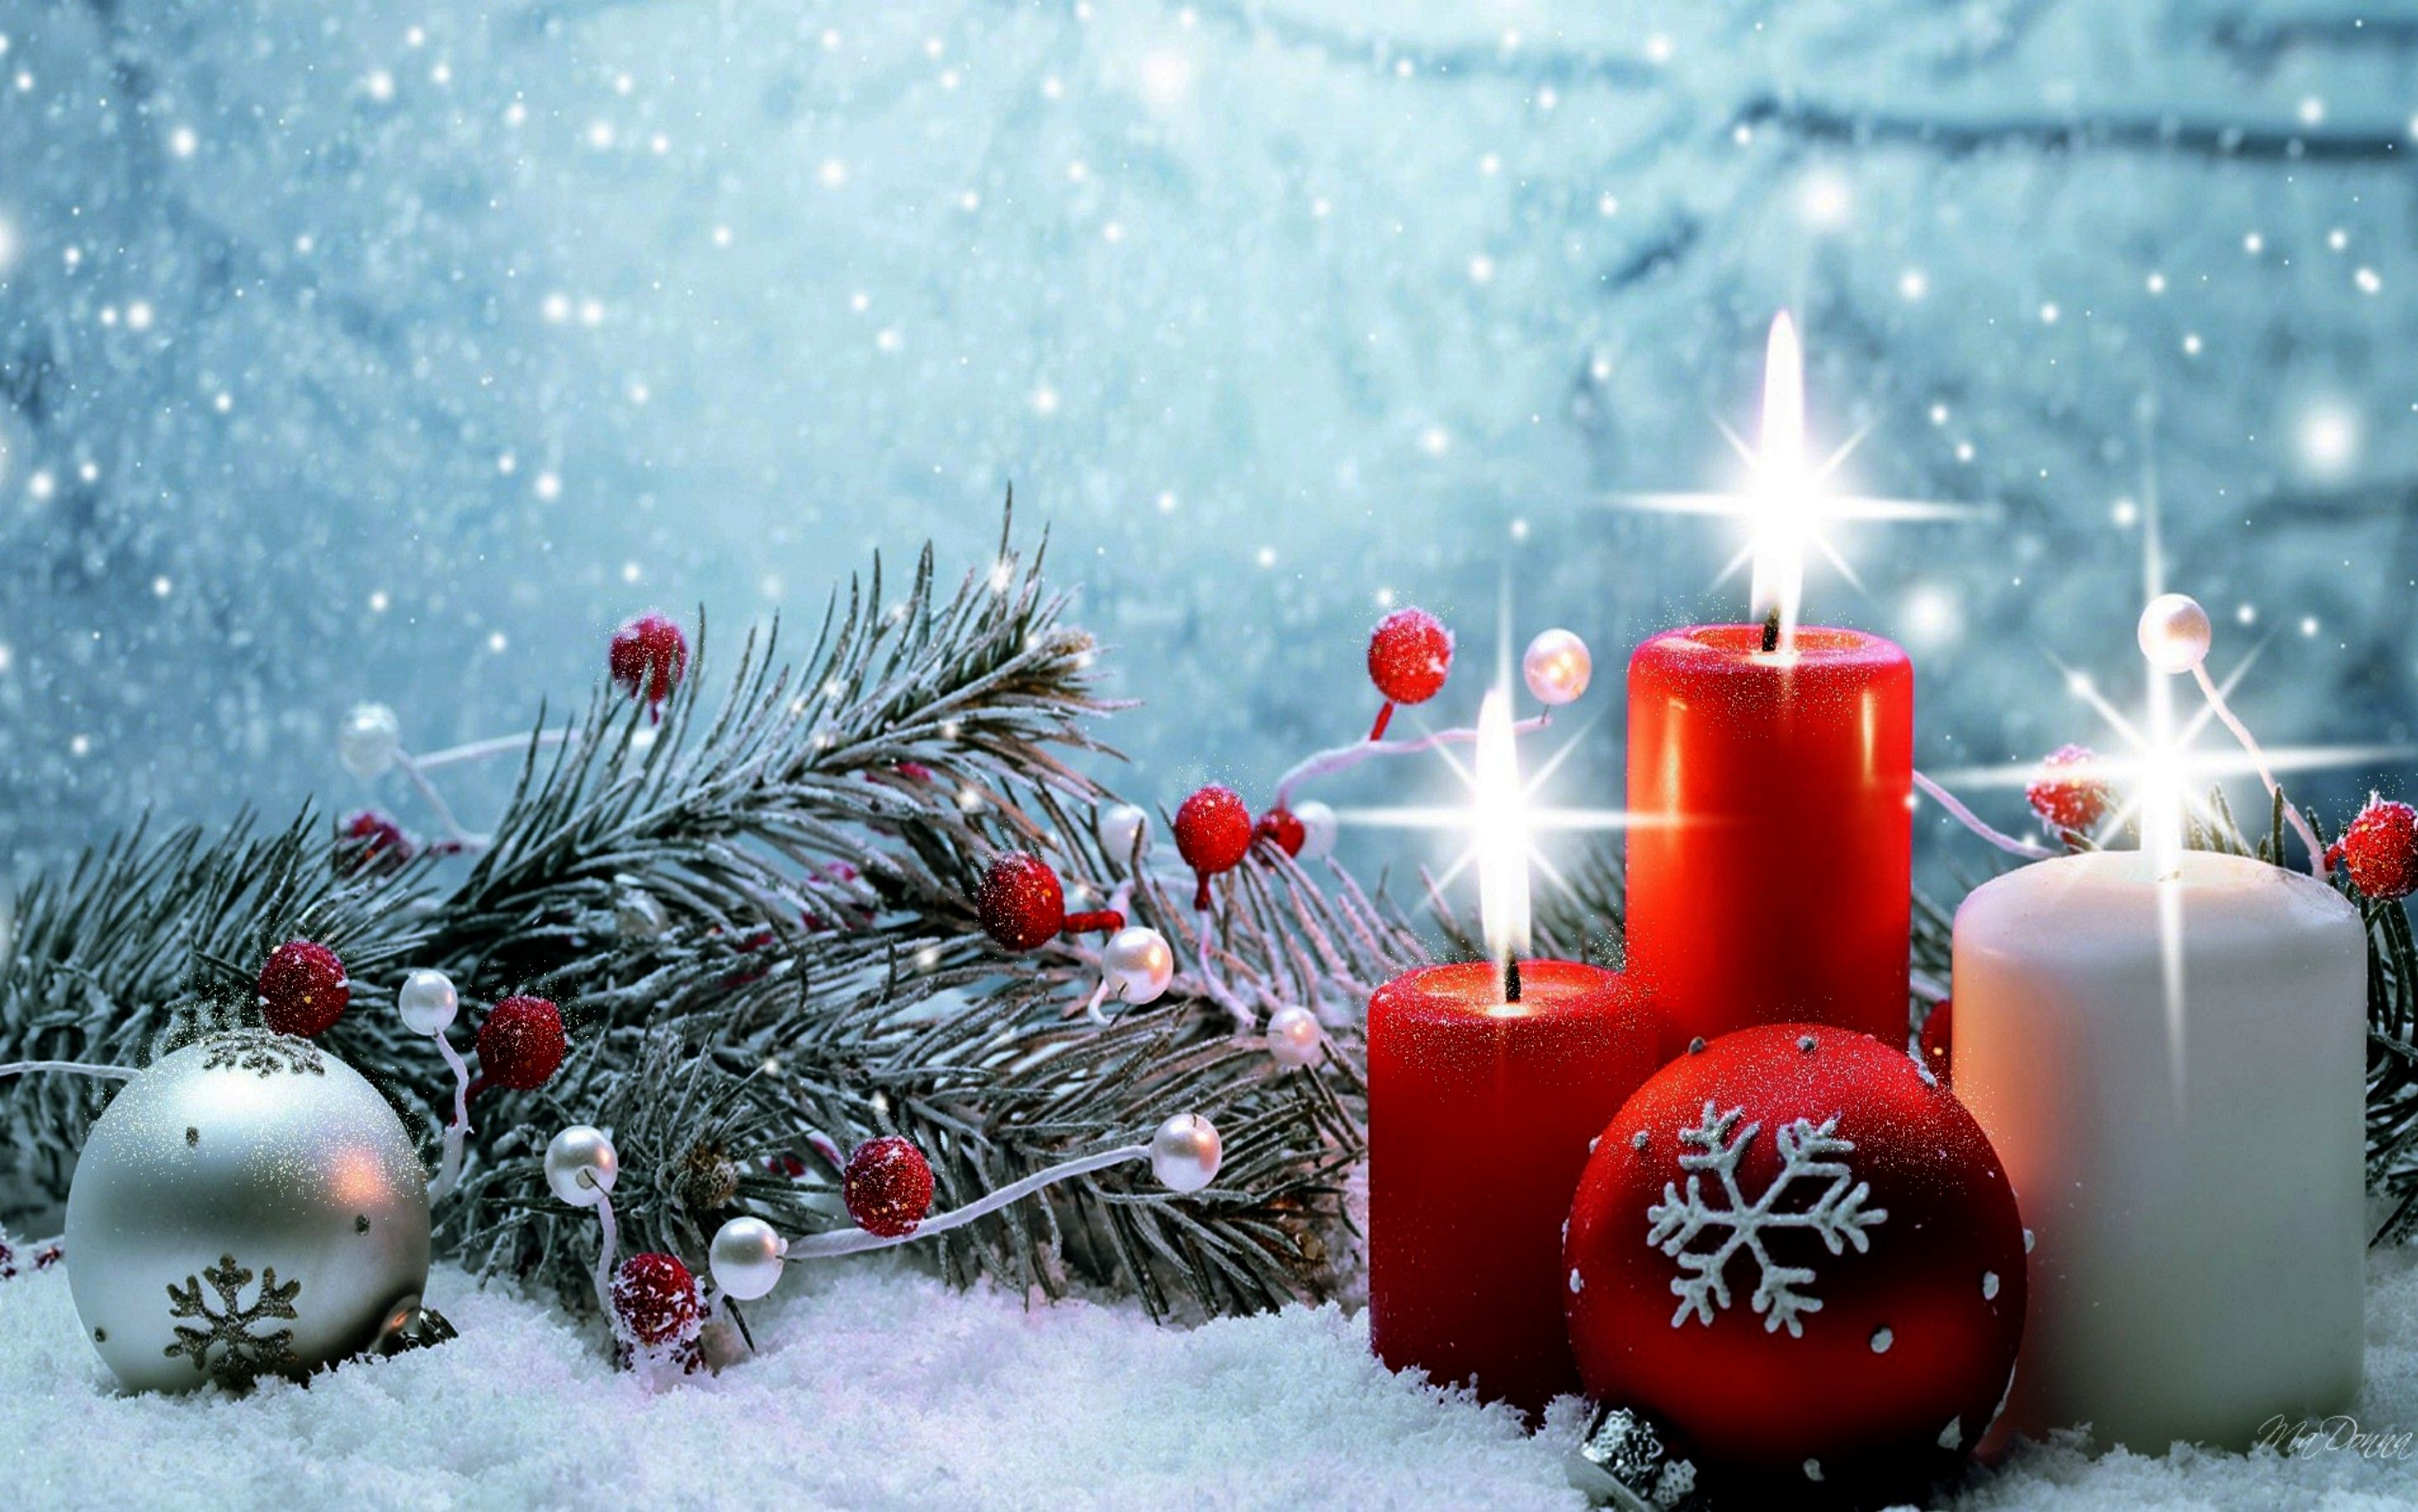 White Christmas Wallpapers Top Free White Christmas Backgrounds Wallpaperaccess